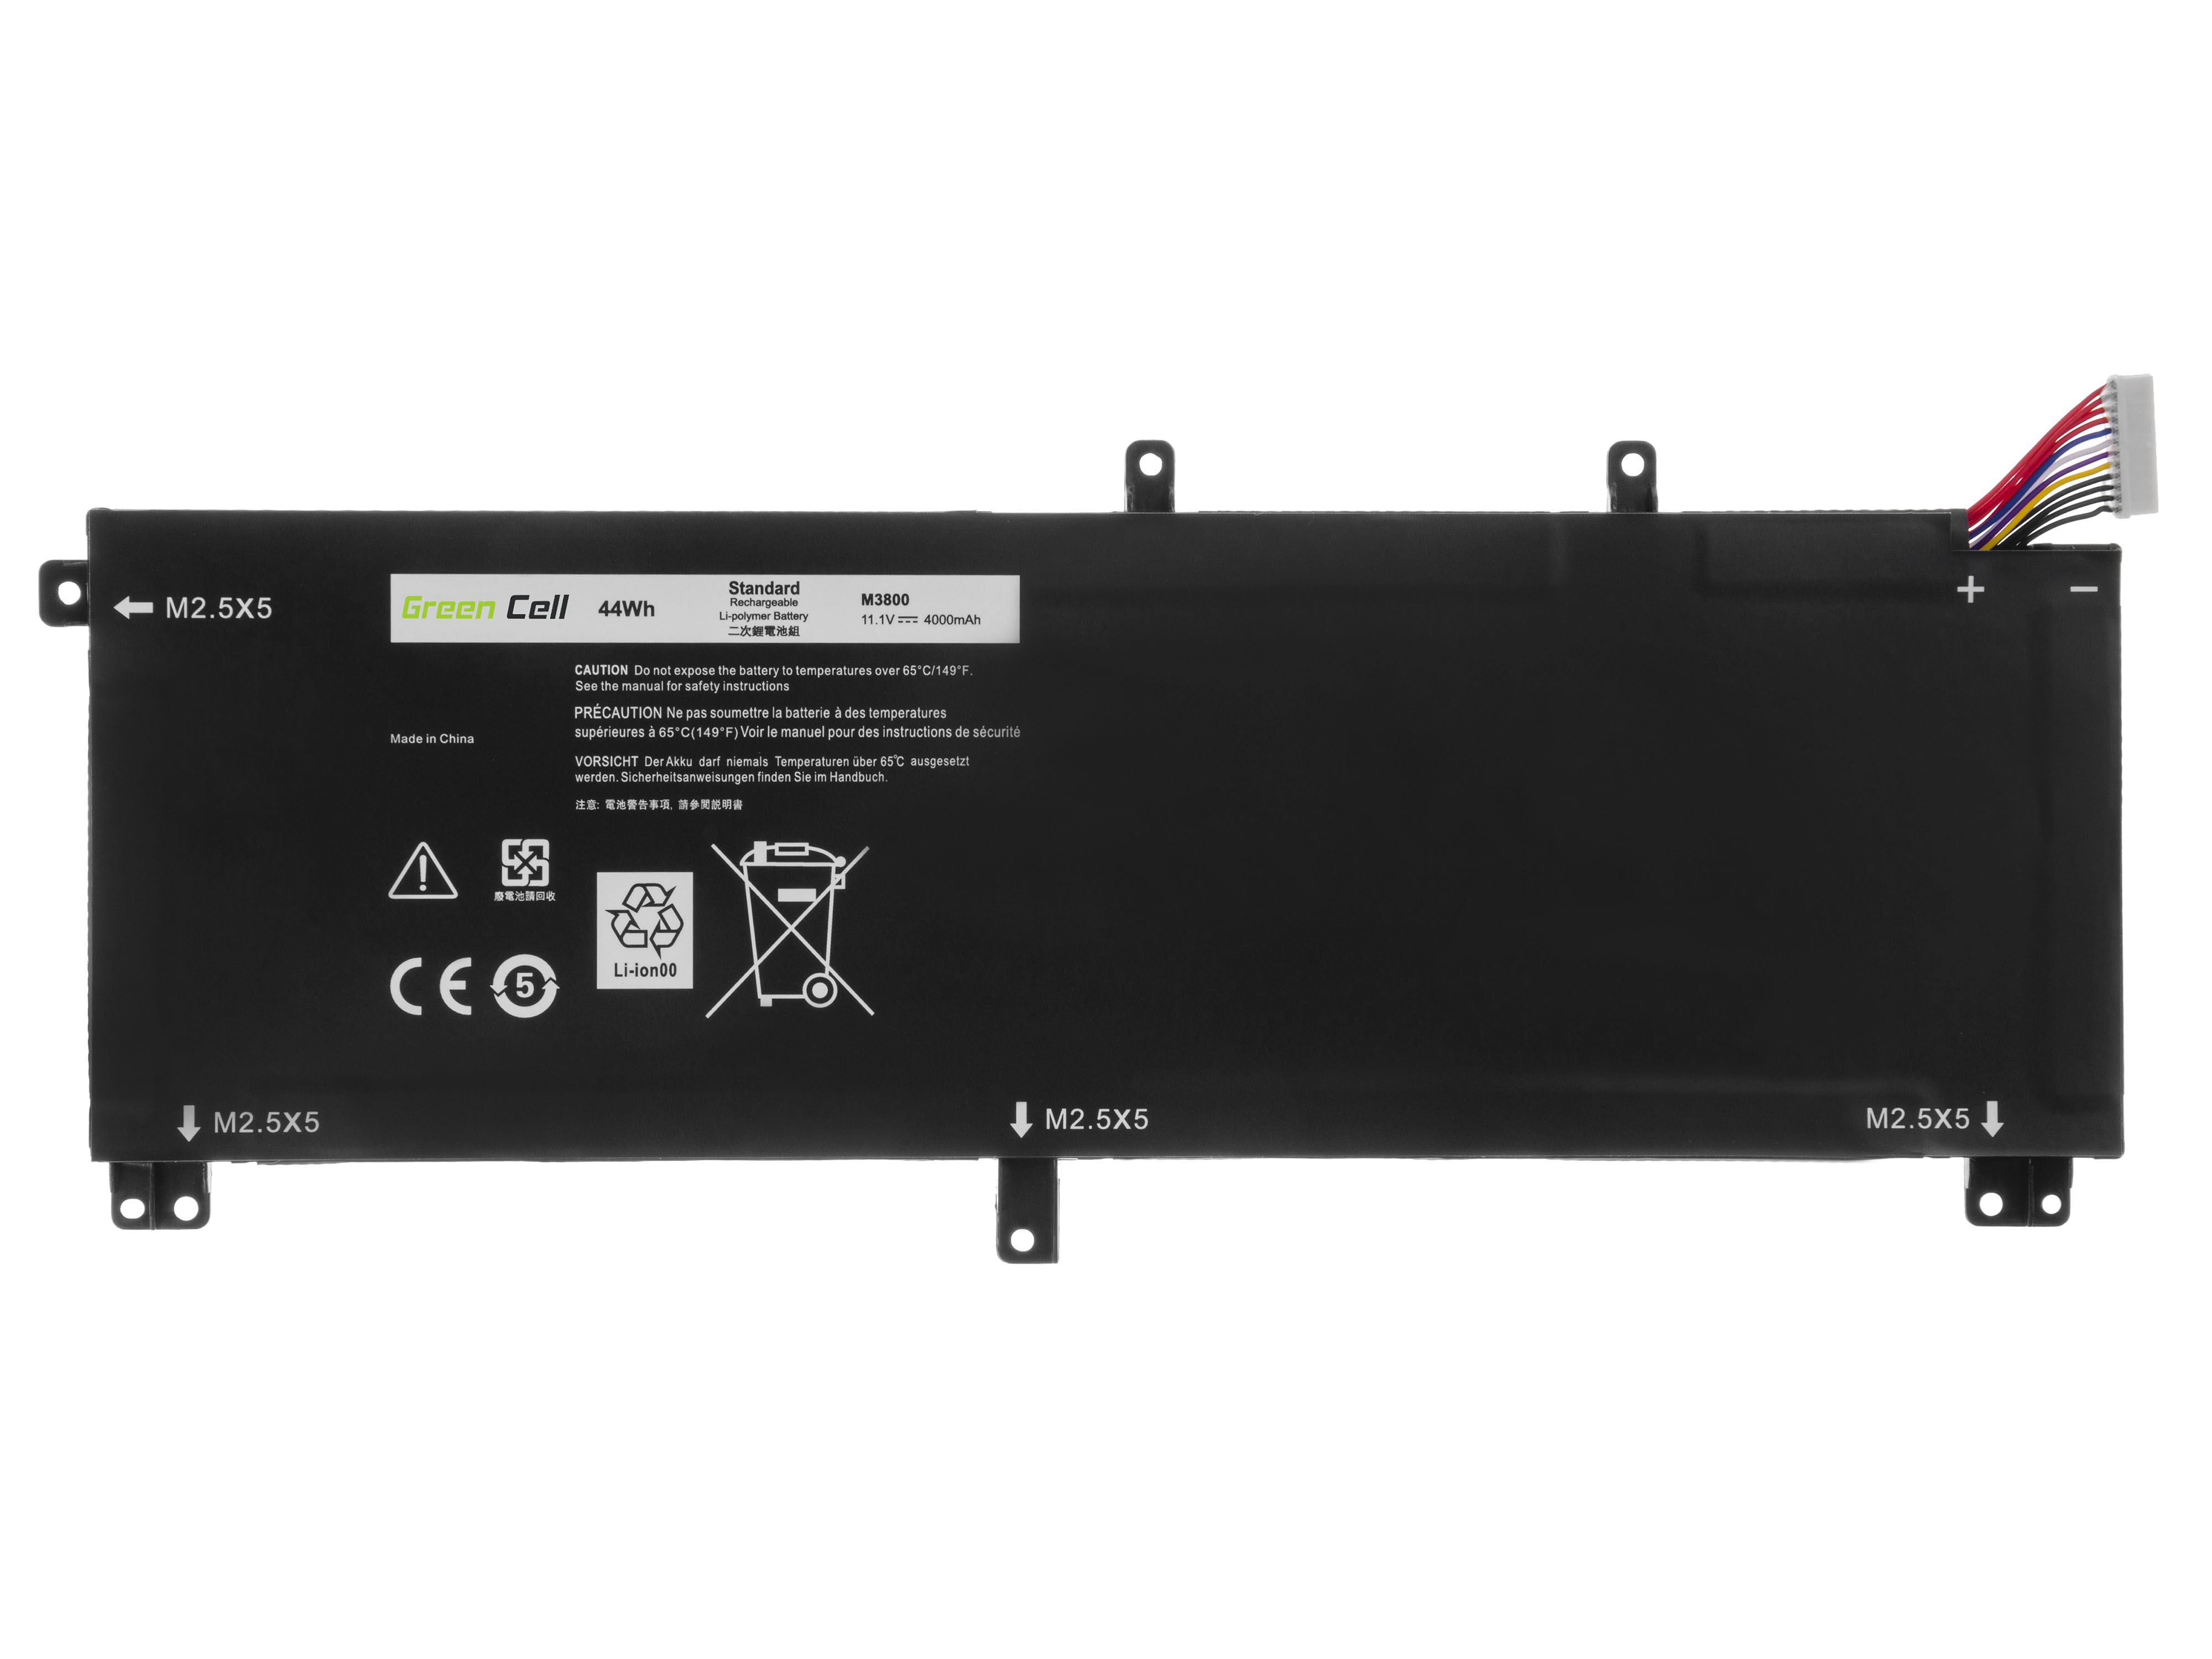 Battery 245RR T0TRM TOTRM for laptops Dell XPS 15 9530, Dell Precision M3800